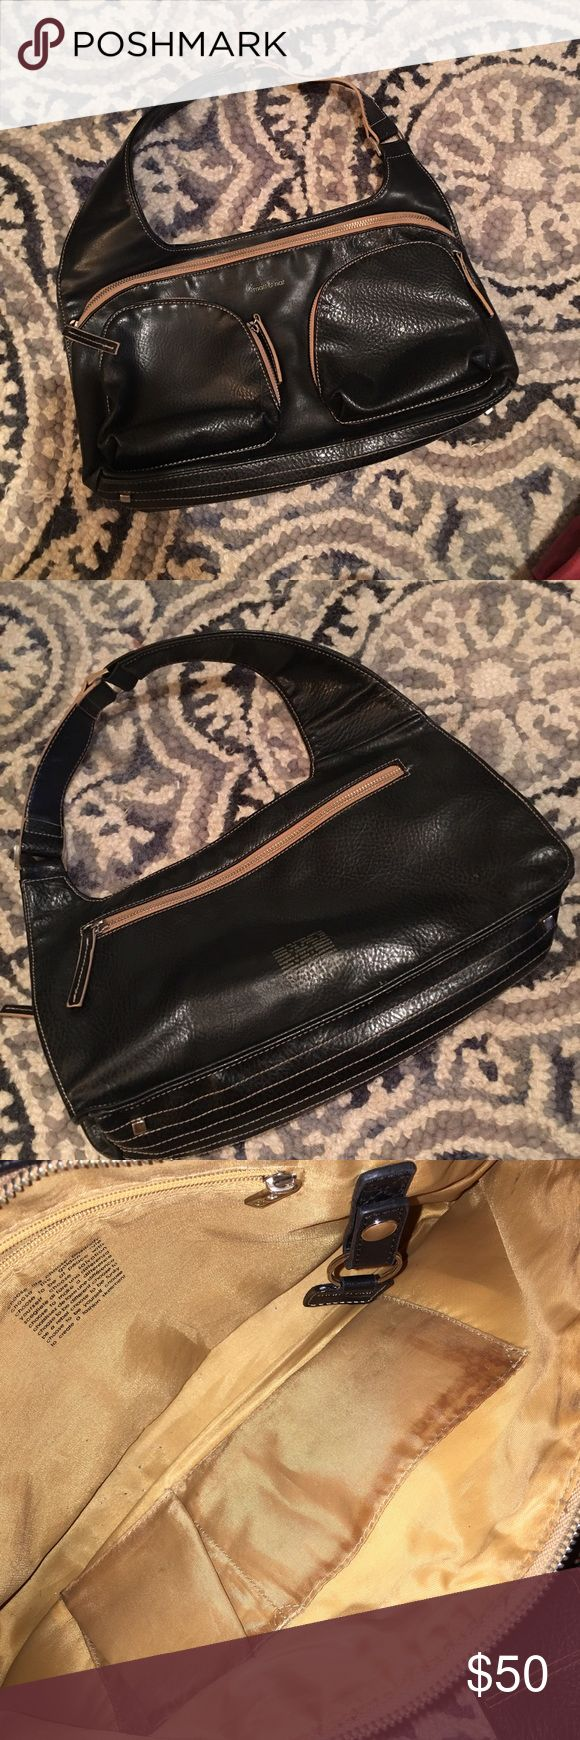 ❗️SALE❗️matt and nat shoulder bag lovely black matt and nat vegan leather shoulder bag. one large/main zippered area with two (interior) pockets + one zippered pocket, two exterior zippered pockets (perfect  for keys, iphone 6S+ will need to go inside or in back pocket!), as well as a zippered exterior pocket on the back. has the key ring inside. no tears. no ink marks. one spot on INTERIOR pocket (pic 3), doesn't alter the look/function. smoke free home. please no trades. *throwing in…